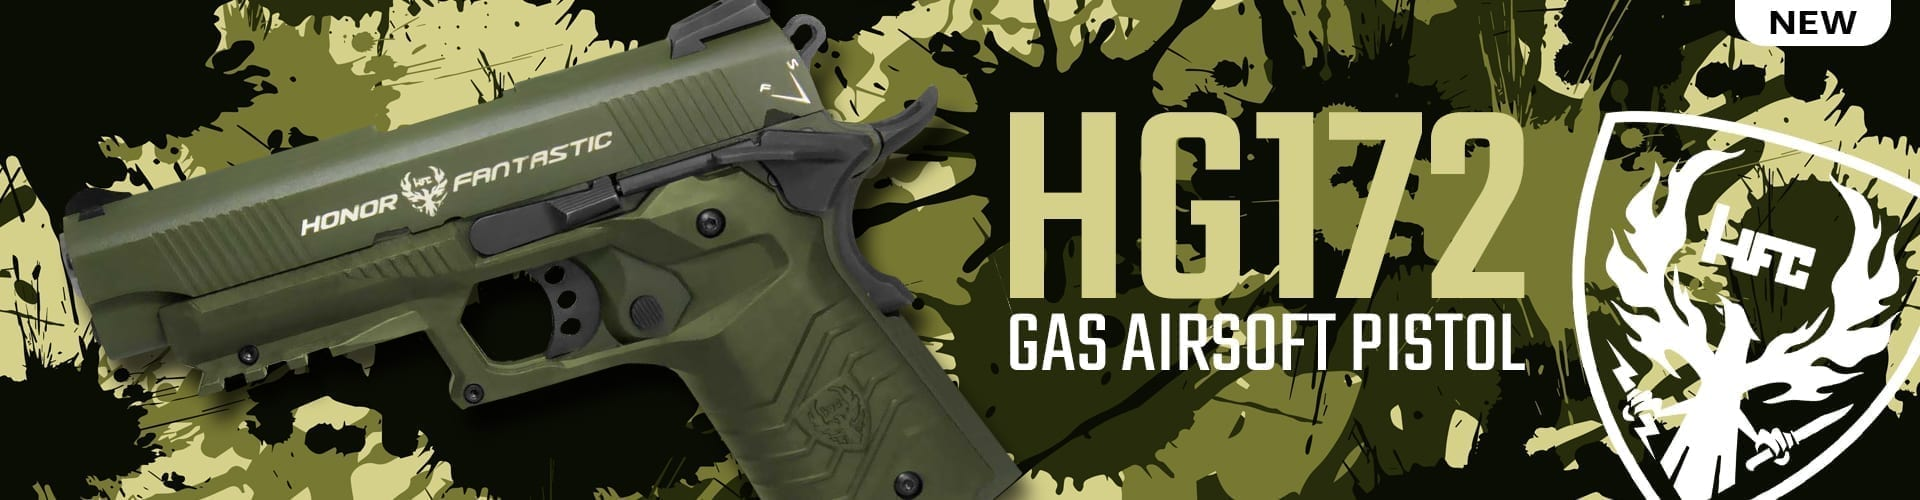 HFC-HG172-GAS-AIRSOFT-PISTOL